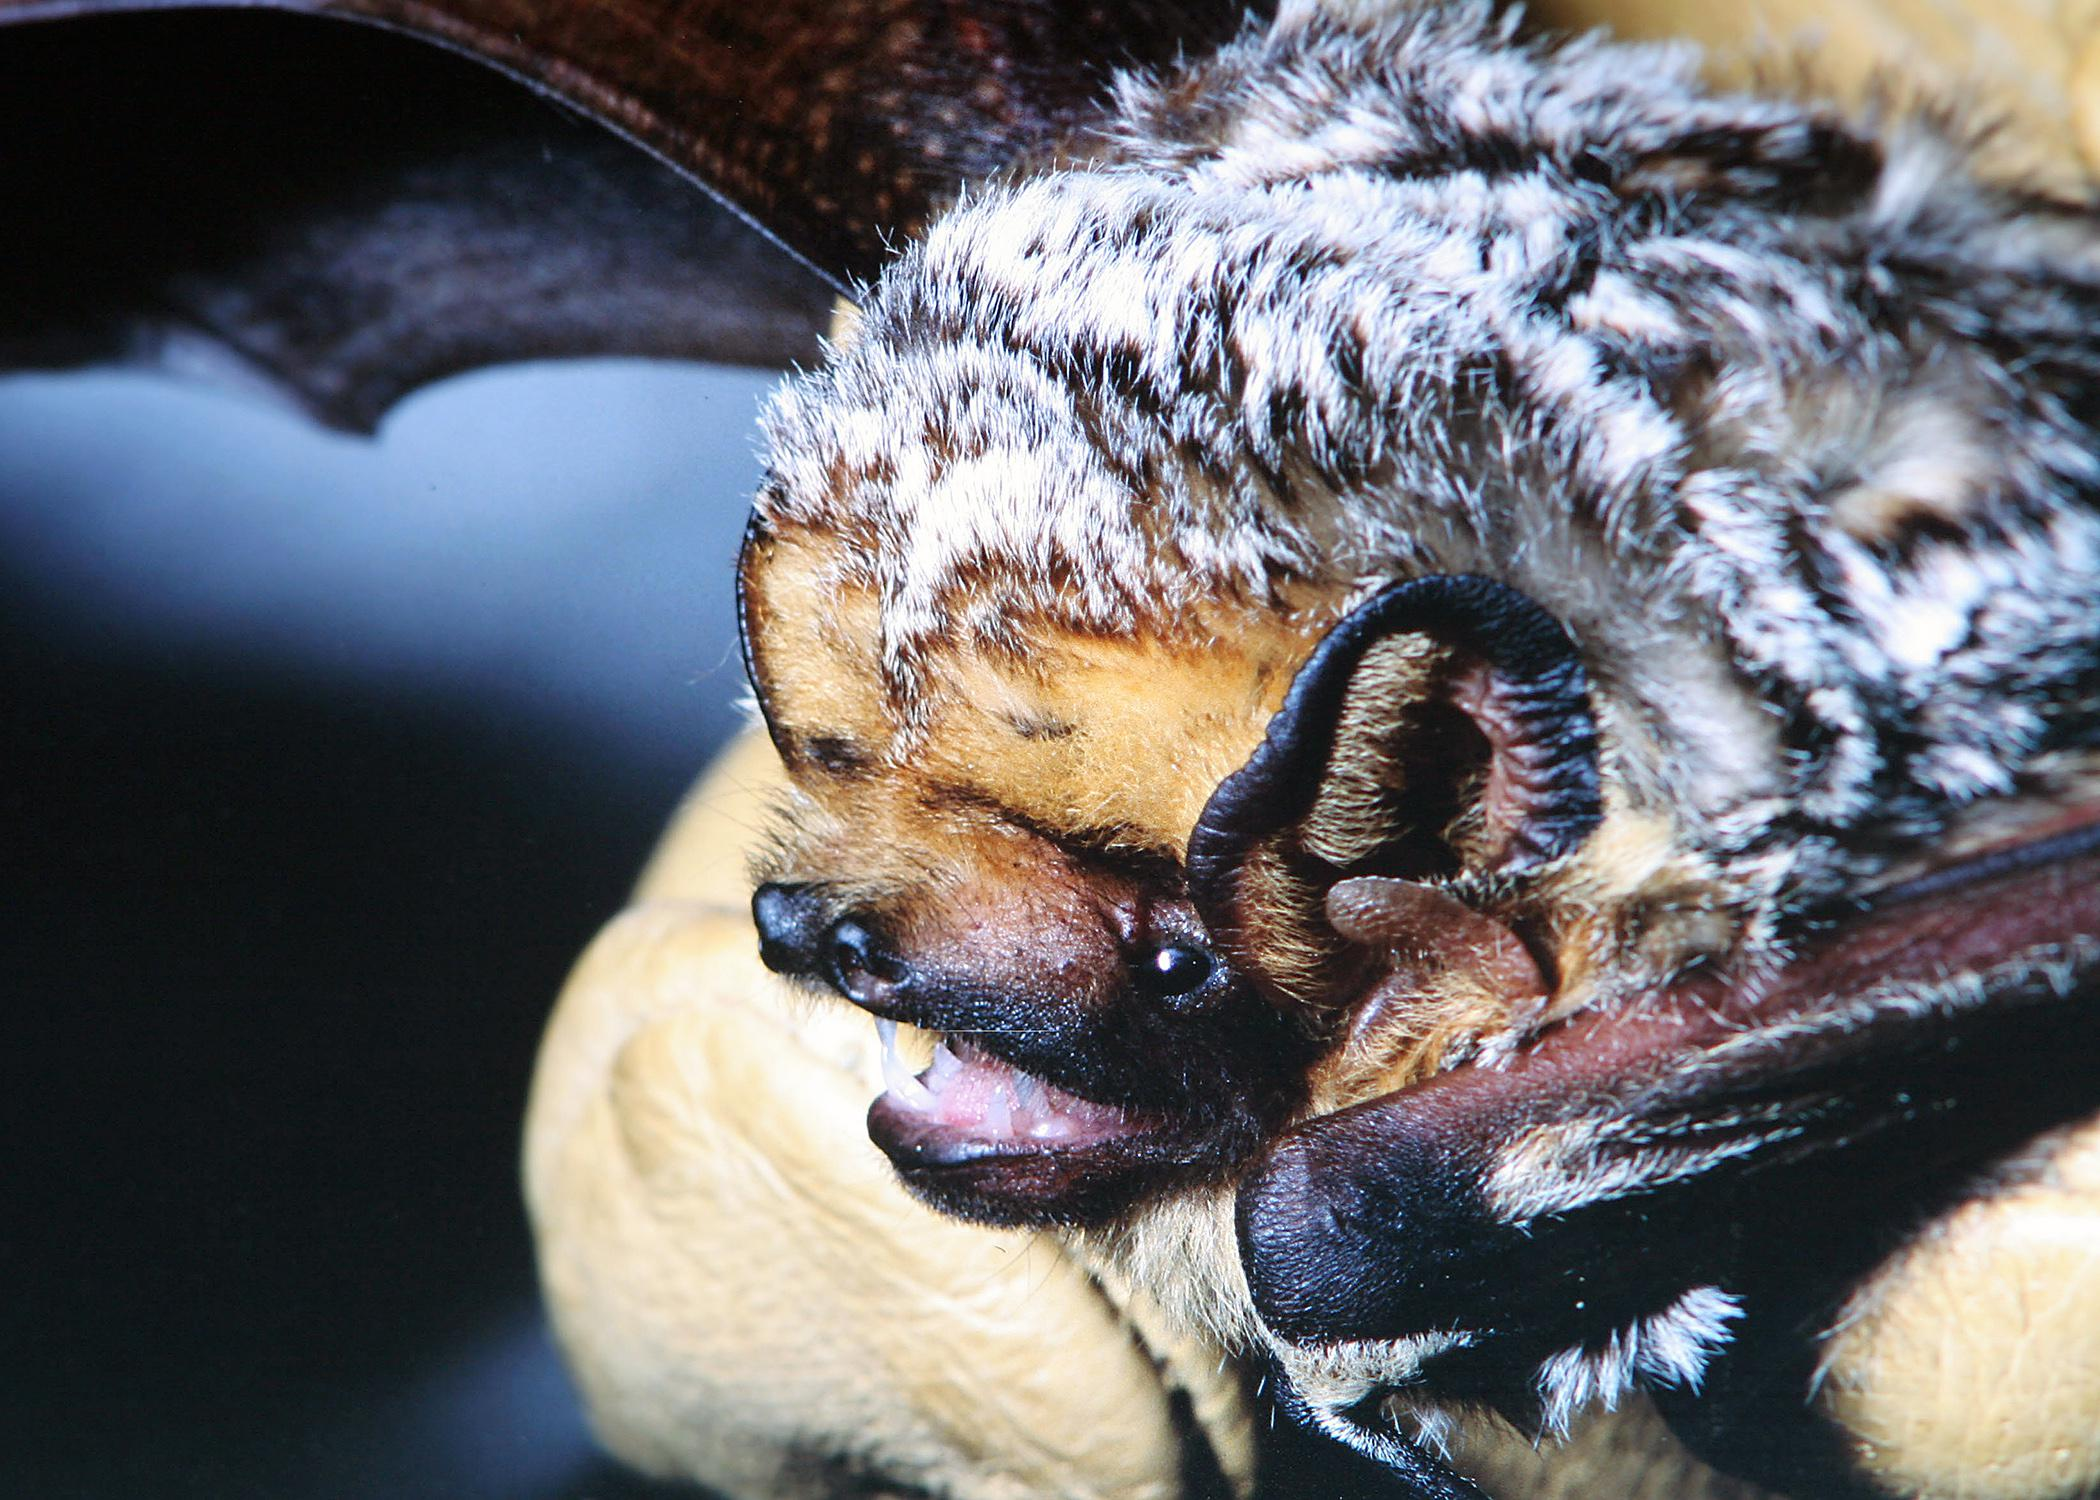 This hoary bat, Lasiurus cinereus, is a solitary animal found in Mississippi that prefers to roost in the foliage of trees. Bats provide many environmental benefits, including pollination and insect control. (Photo courtesy of Raymond Iglay)